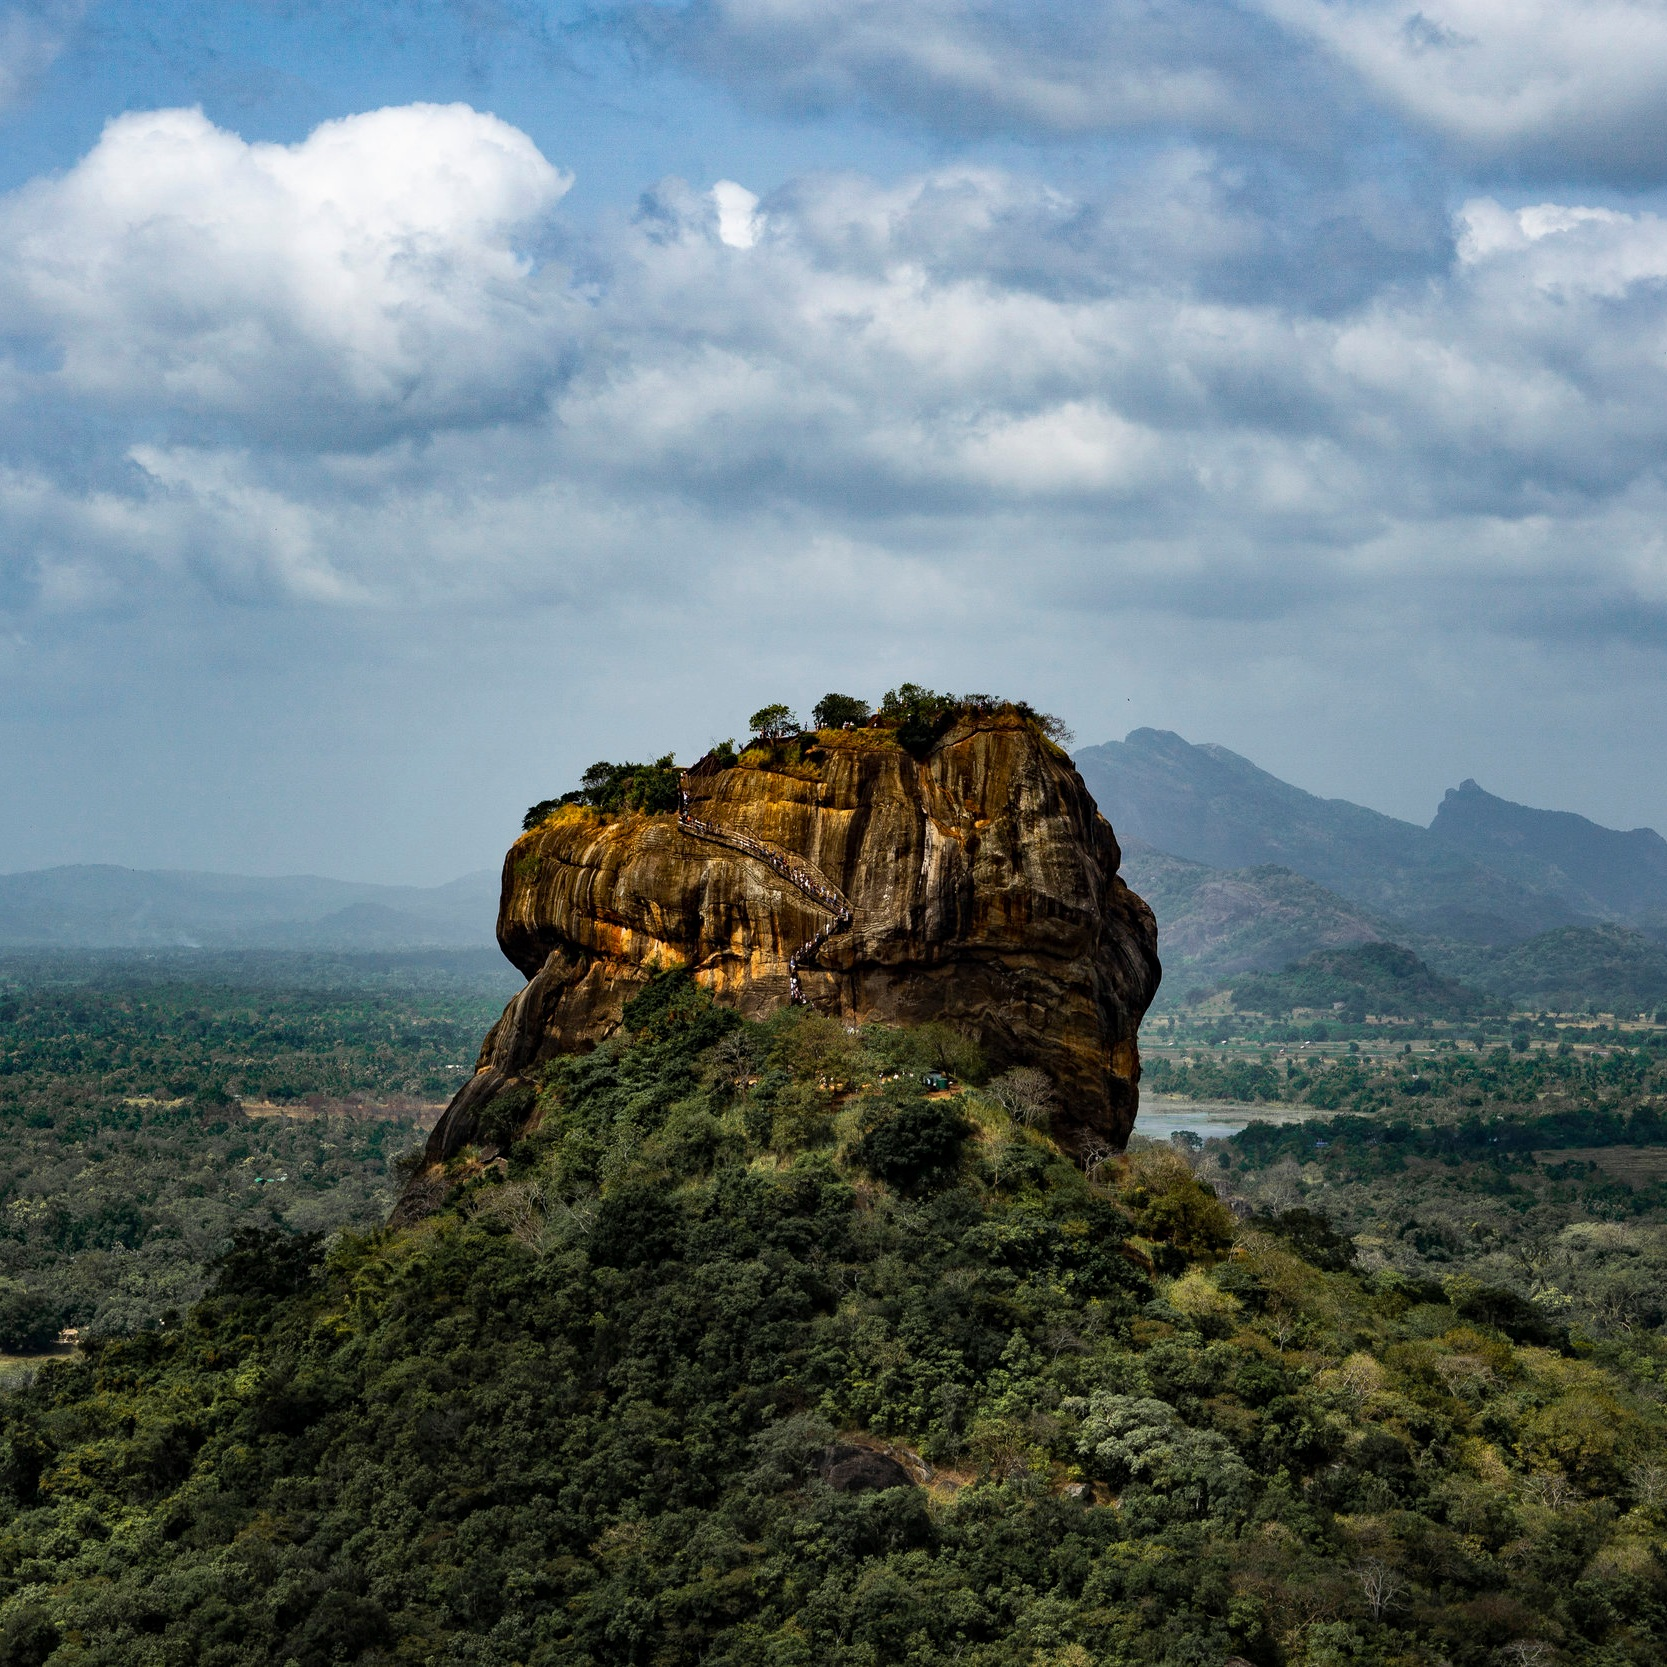 July 5 - Drive to Dambulla (approx. 4 hours)Check into hotel + Time @ swimming pool or restVisit the iconic Sigiriya Rock Fortress (UNESCO World Heritage Site)Overnight: Sigiriya @ Aliya Resort & Spa